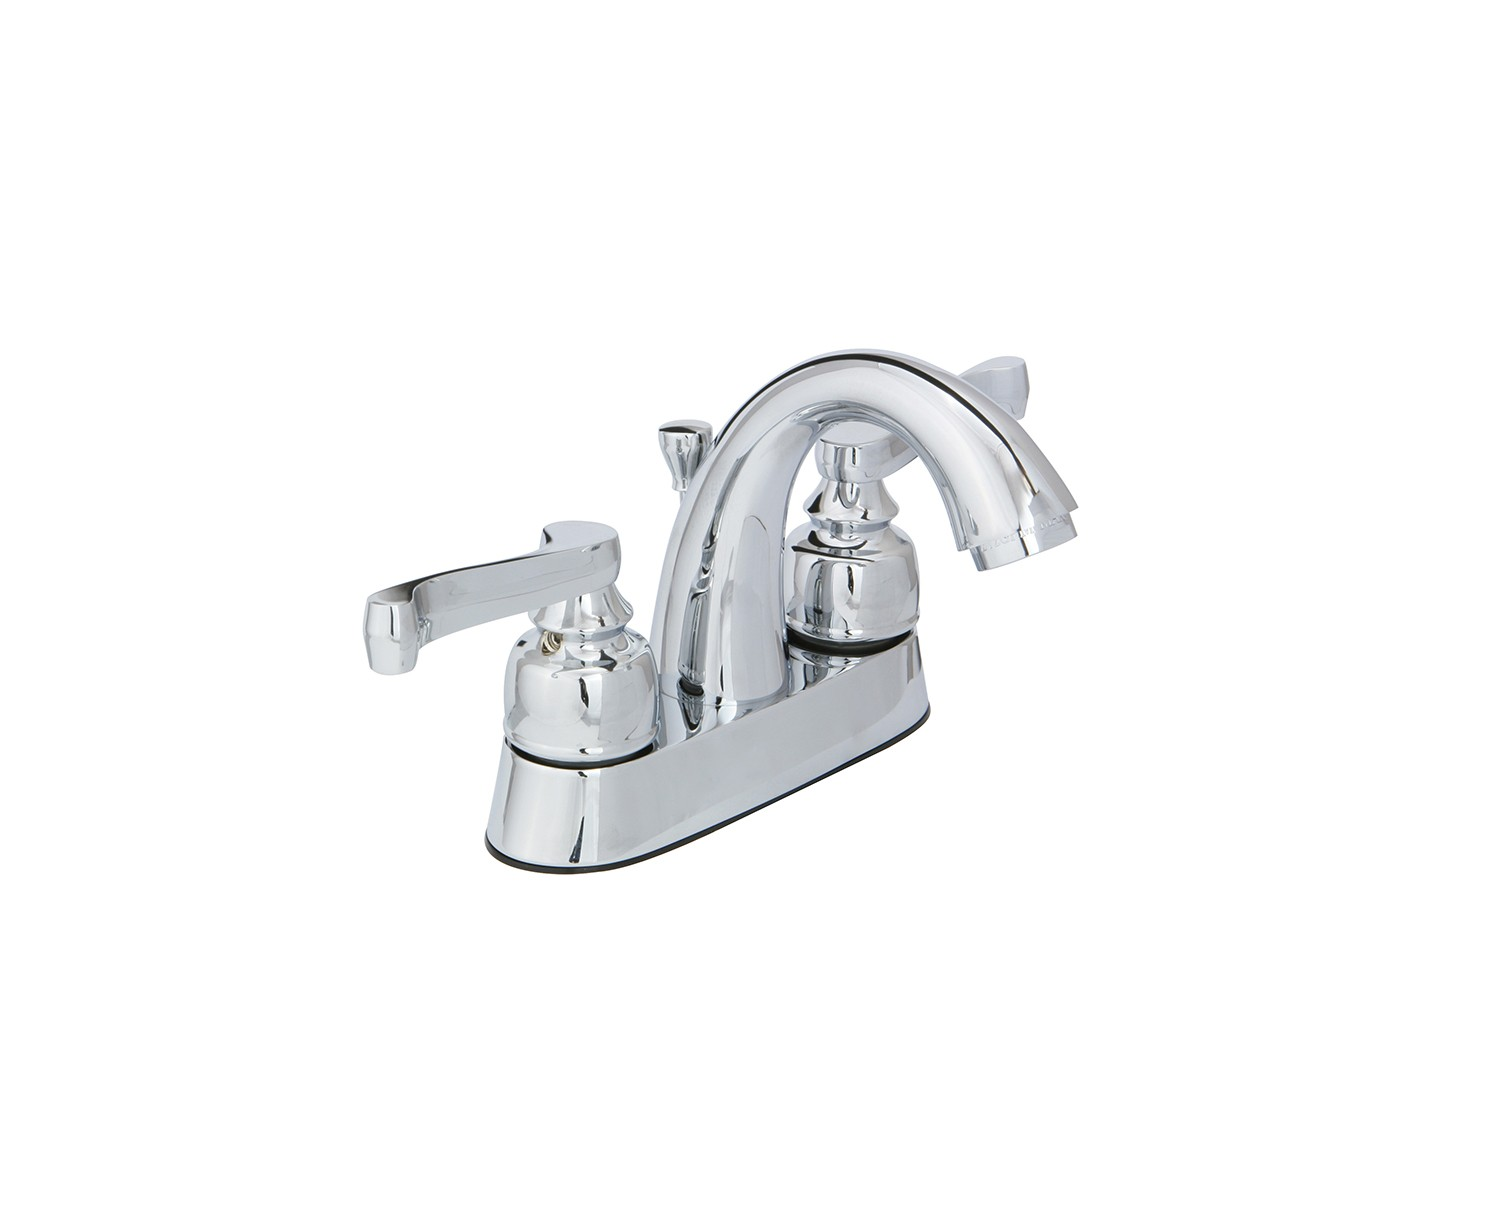 Sienna Center Set Faucet W4420703-1